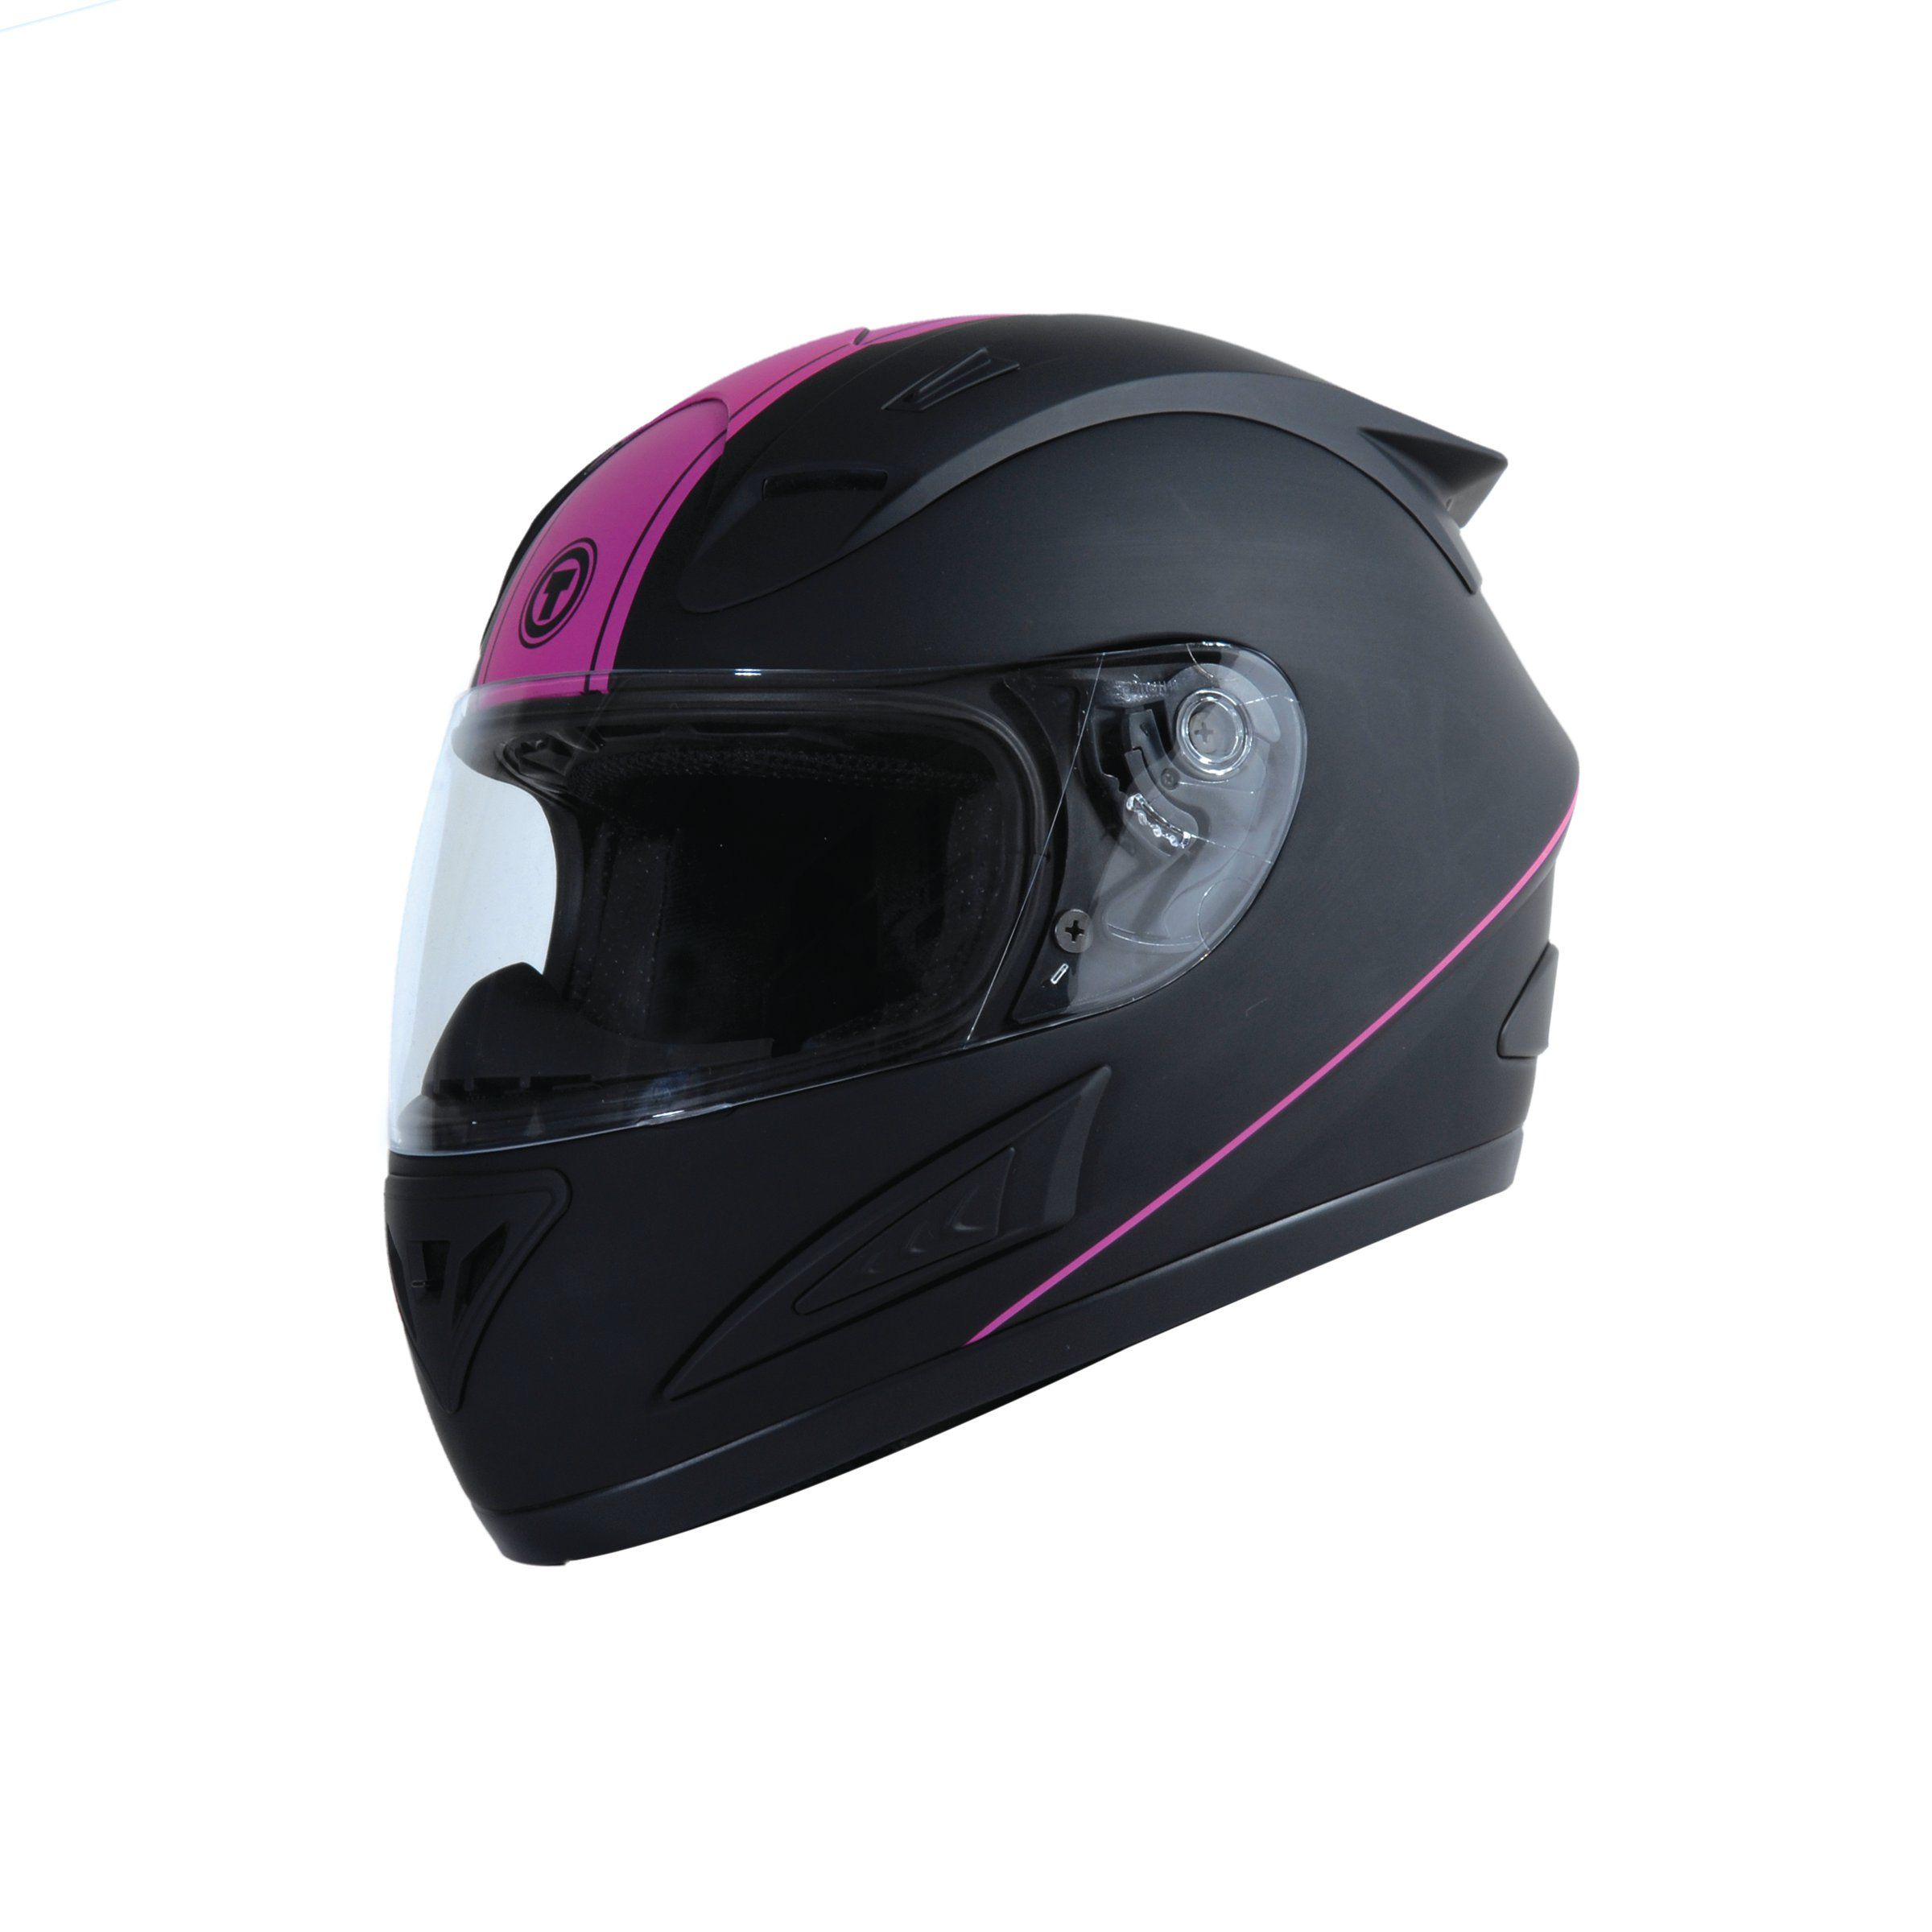 a99004e6 Torc T 10 Ladies Stiletto Matte Black Pink Bluetooth Full Face Motorcycle  Helmet | eBay